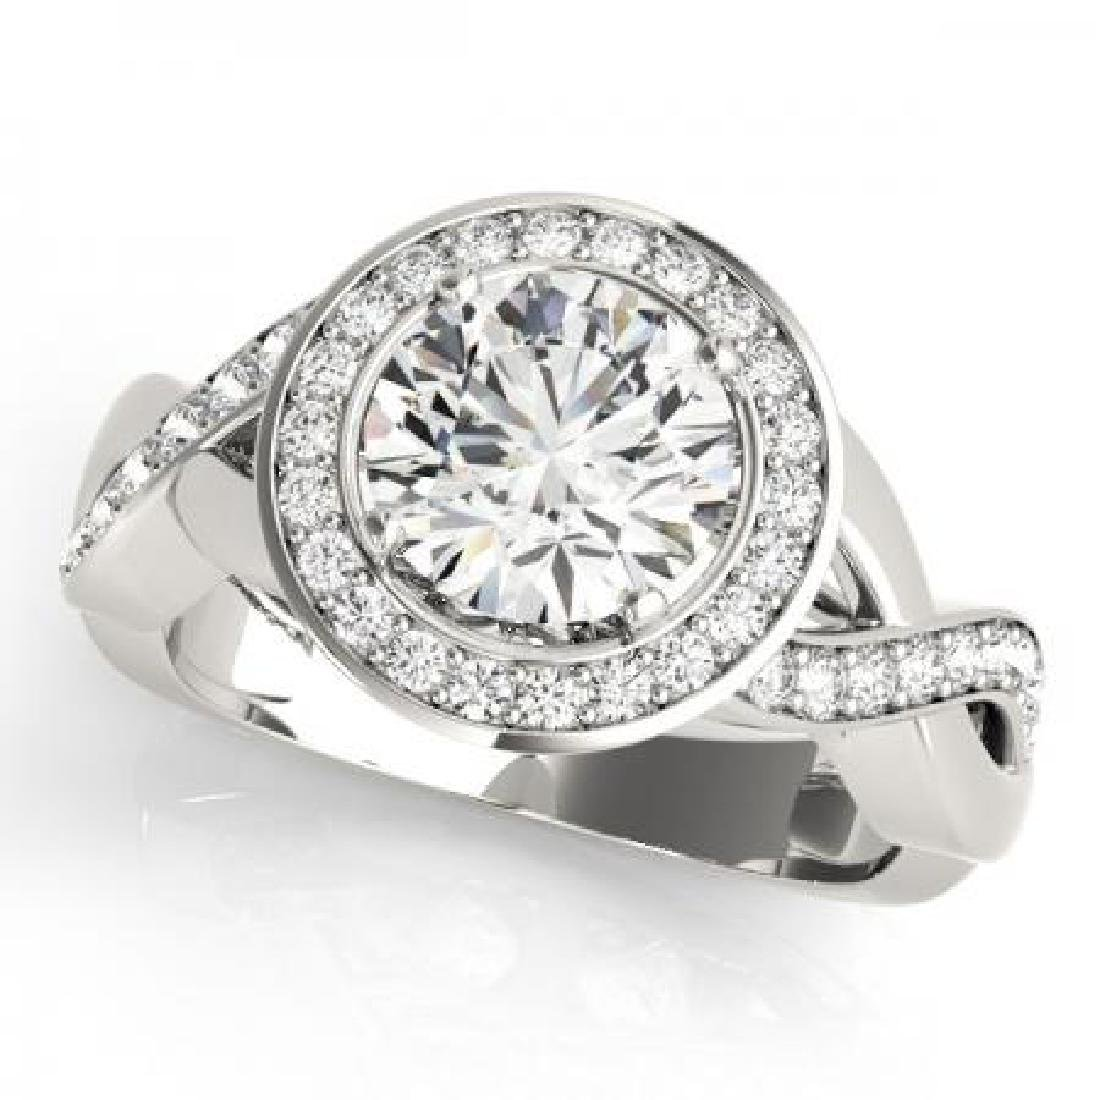 CERTIFIED PLATINUM 1.32 CT G-H/VS-SI1 DIAMOND HALO ENGA